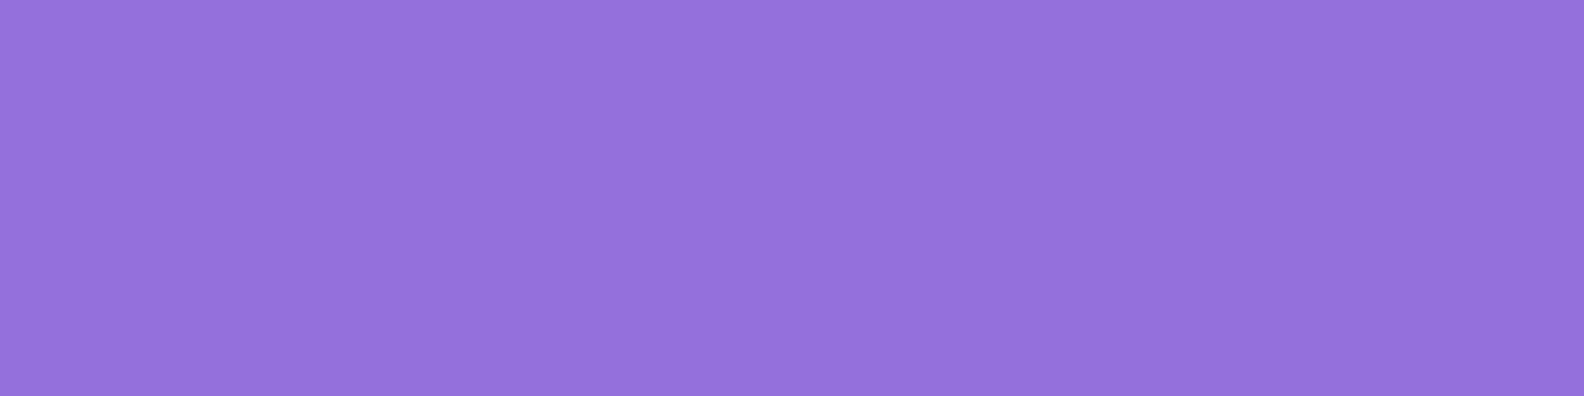 1584x396 Medium Purple Solid Color Background